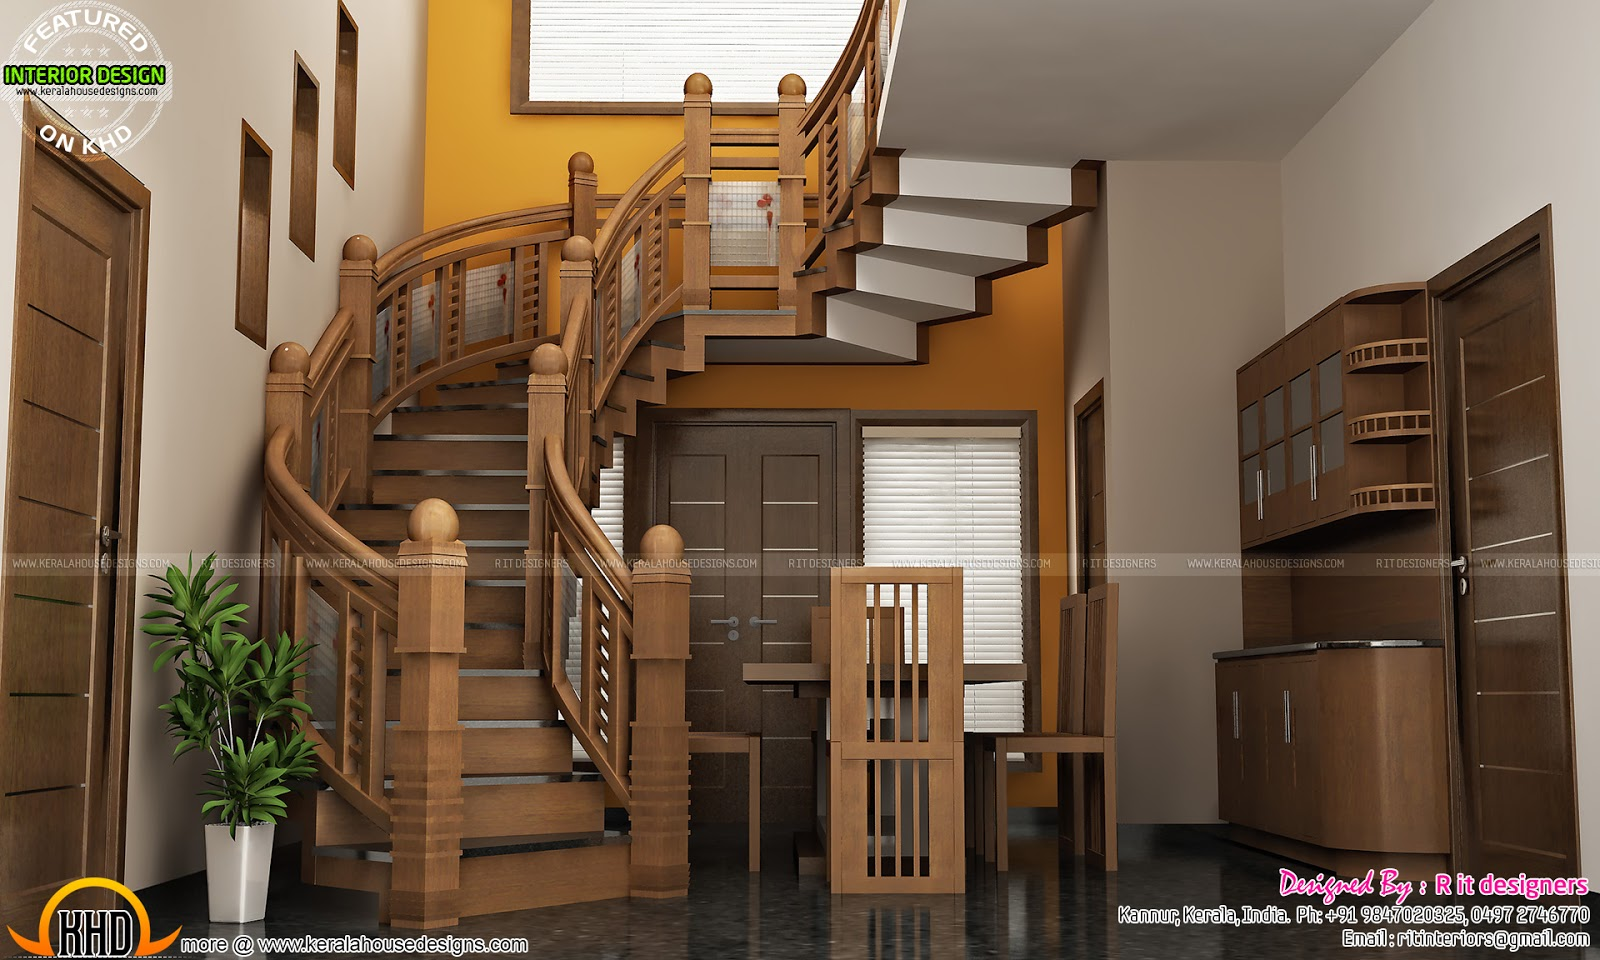 Under stair design wooden stair kitchen and living for House design photos interior design